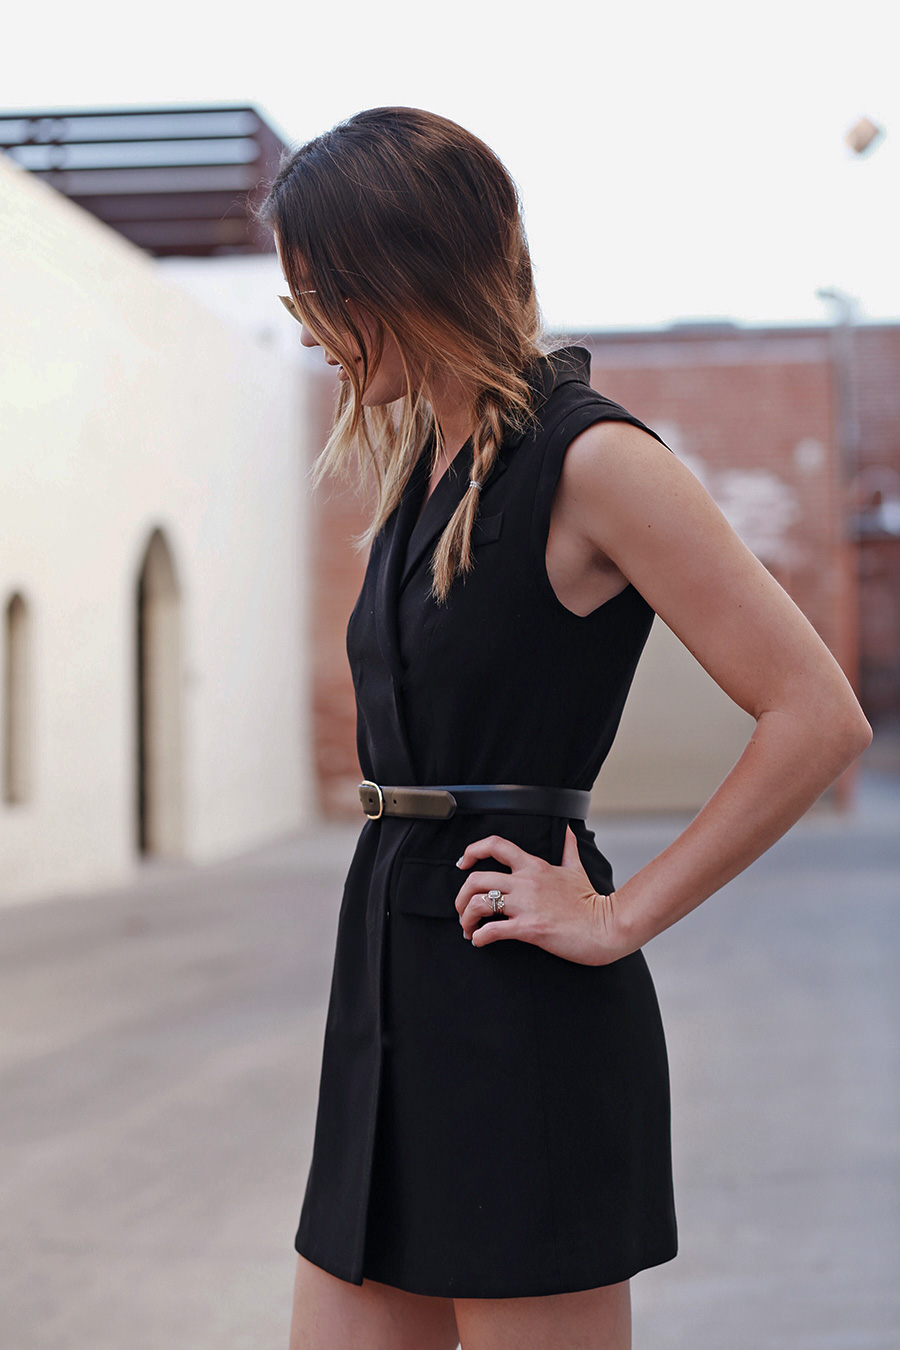 Thin Belt Dress, Fall Trends 2015, Vest Dress, Side Braid, Black Dress, Leather Belt